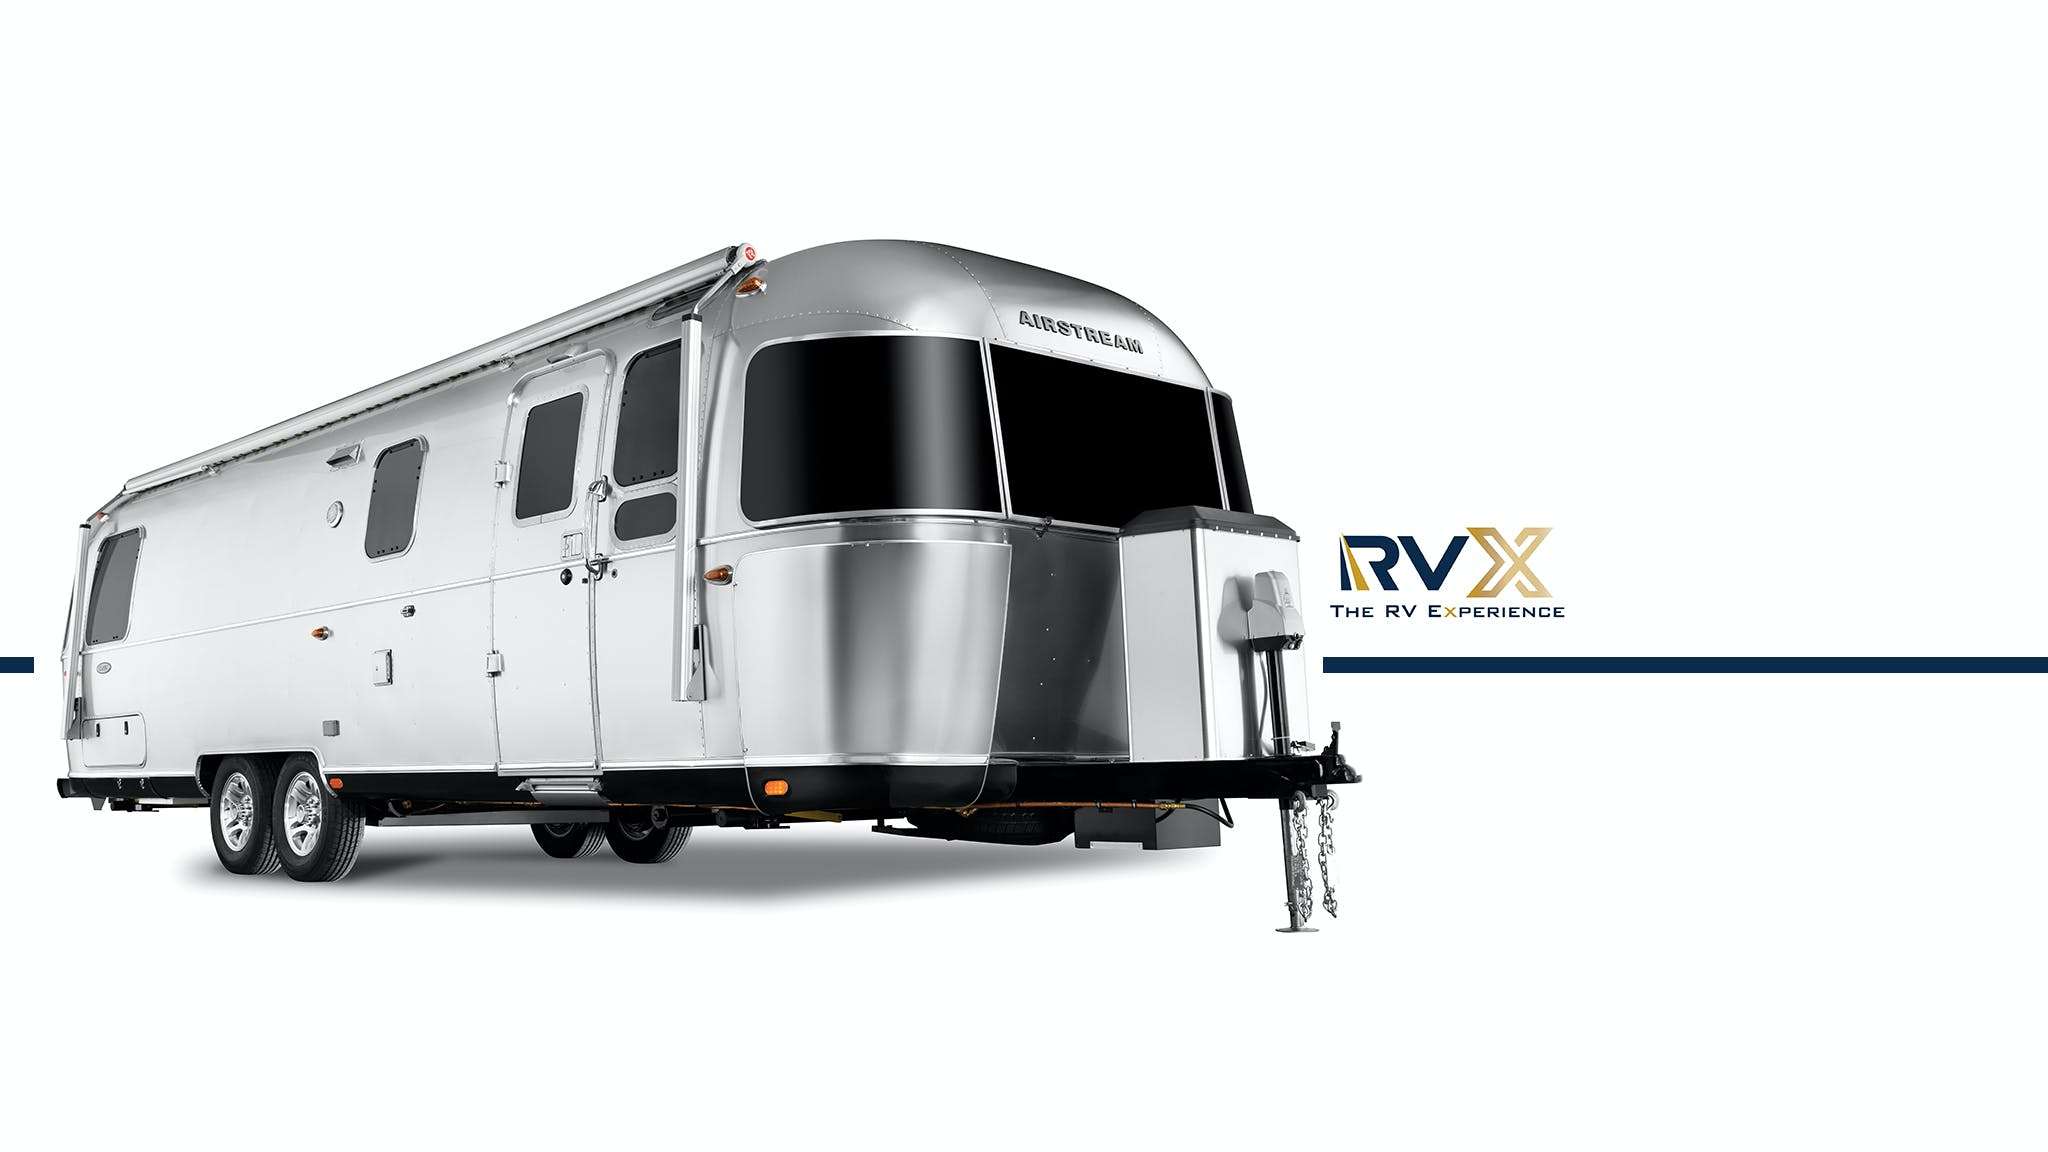 Airstream Classic RVX Award